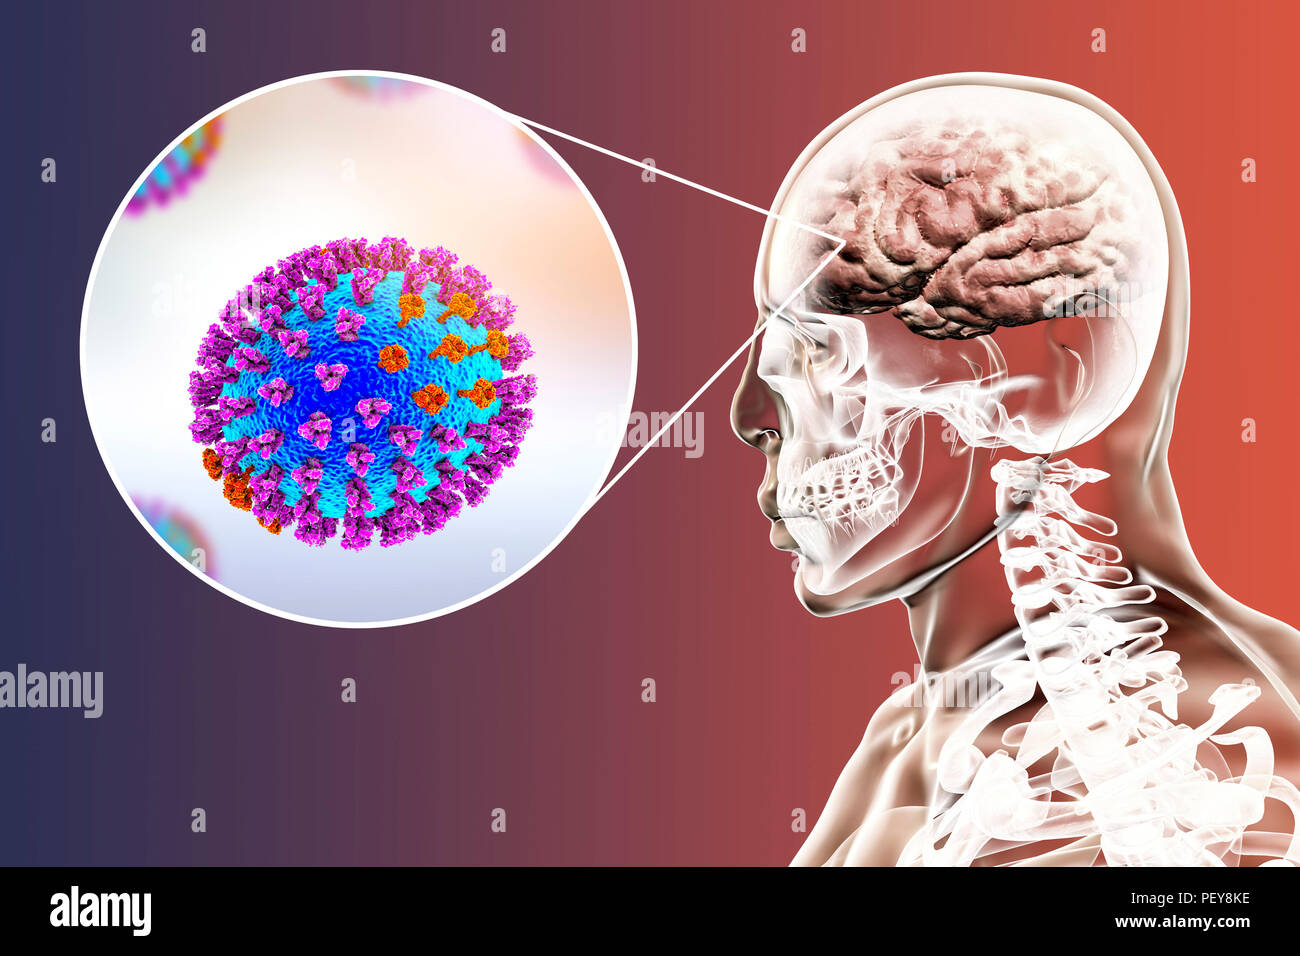 Computer illustrations showing the common complication of flu infection, such as encephalitis. - Stock Image